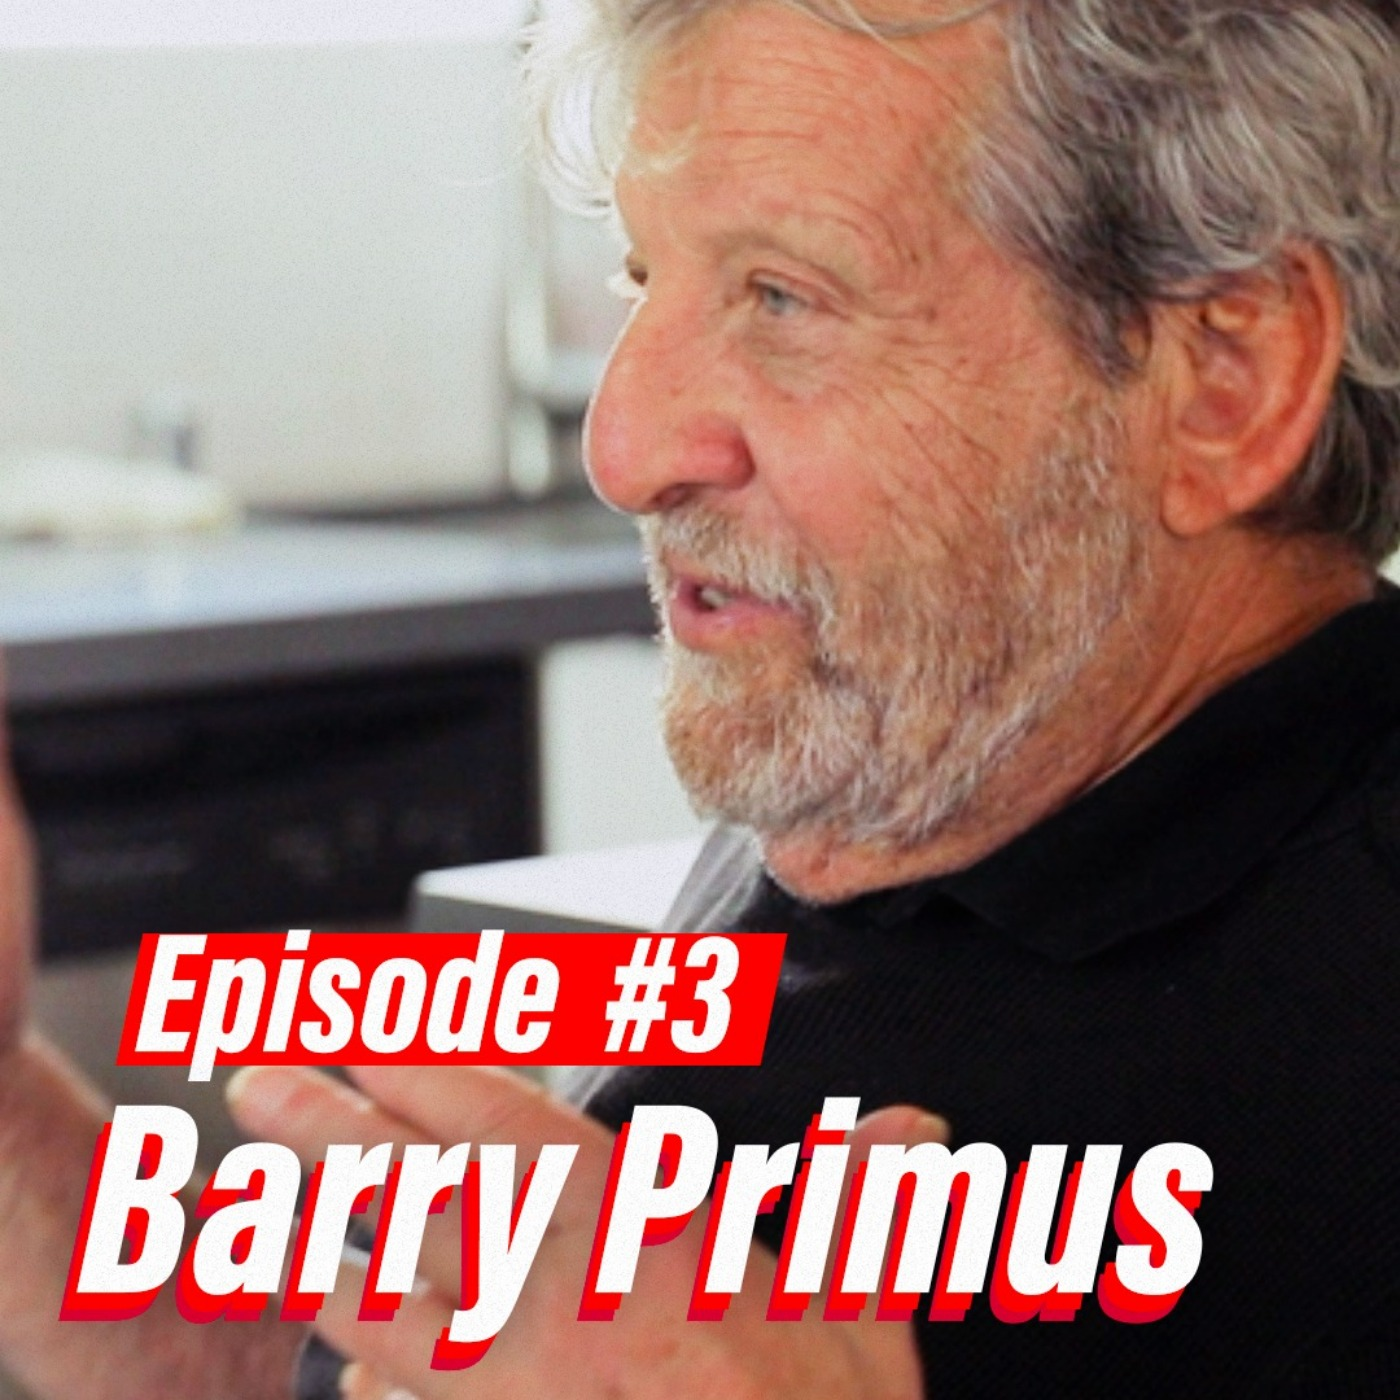 Episode #3 with Barry Primus